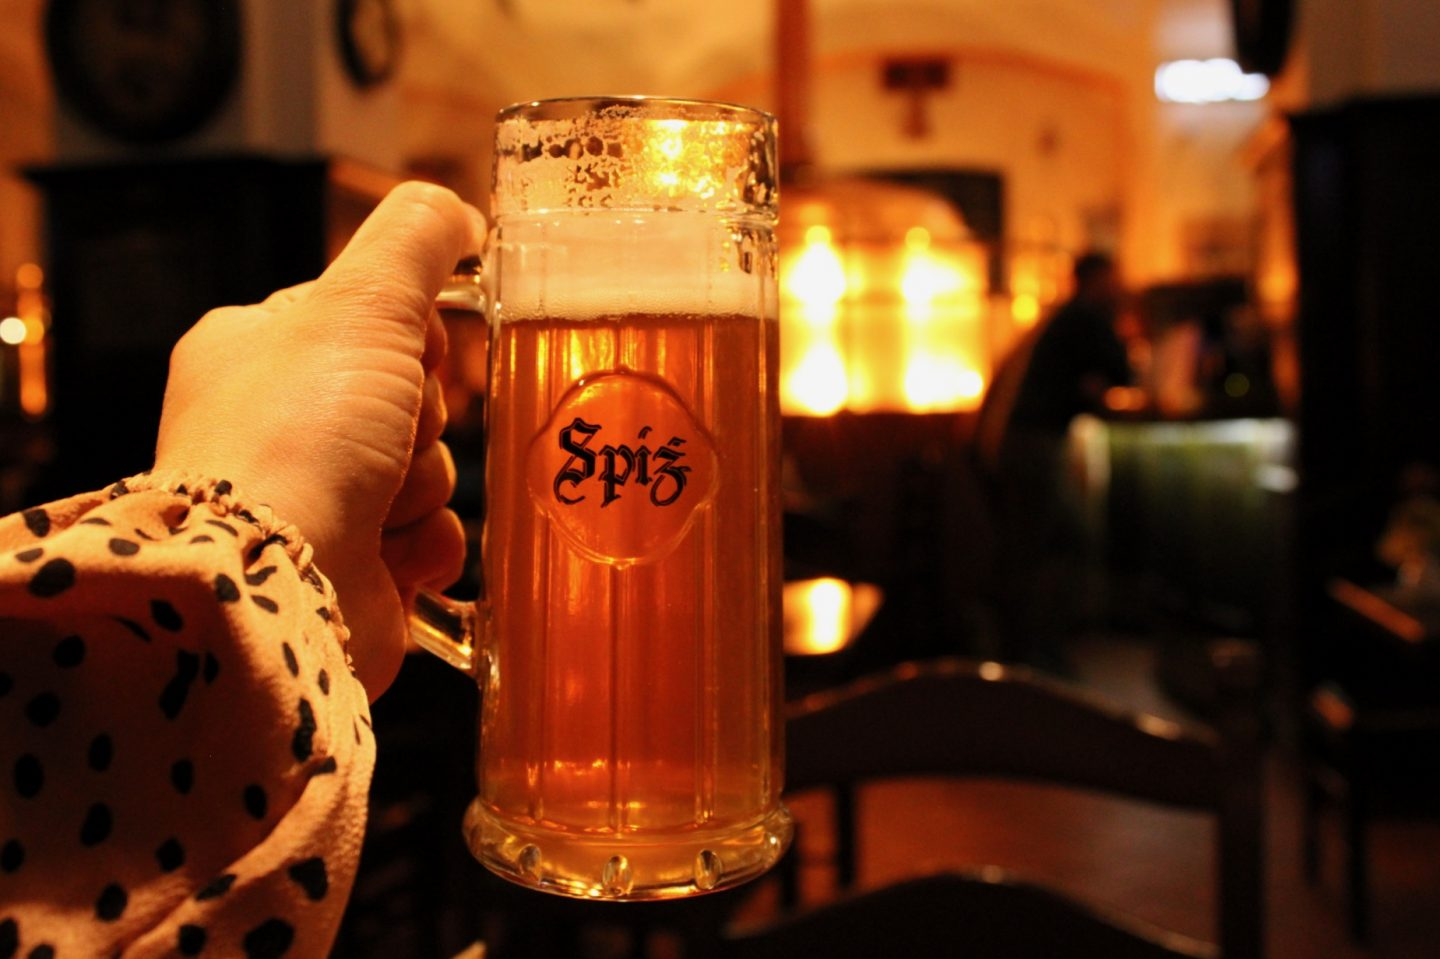 best bars in wroclaw, craft beer bars in Wroclaw: hand holding up a beer with Spiz written on the glass and a copper beer vat out of focus in the background